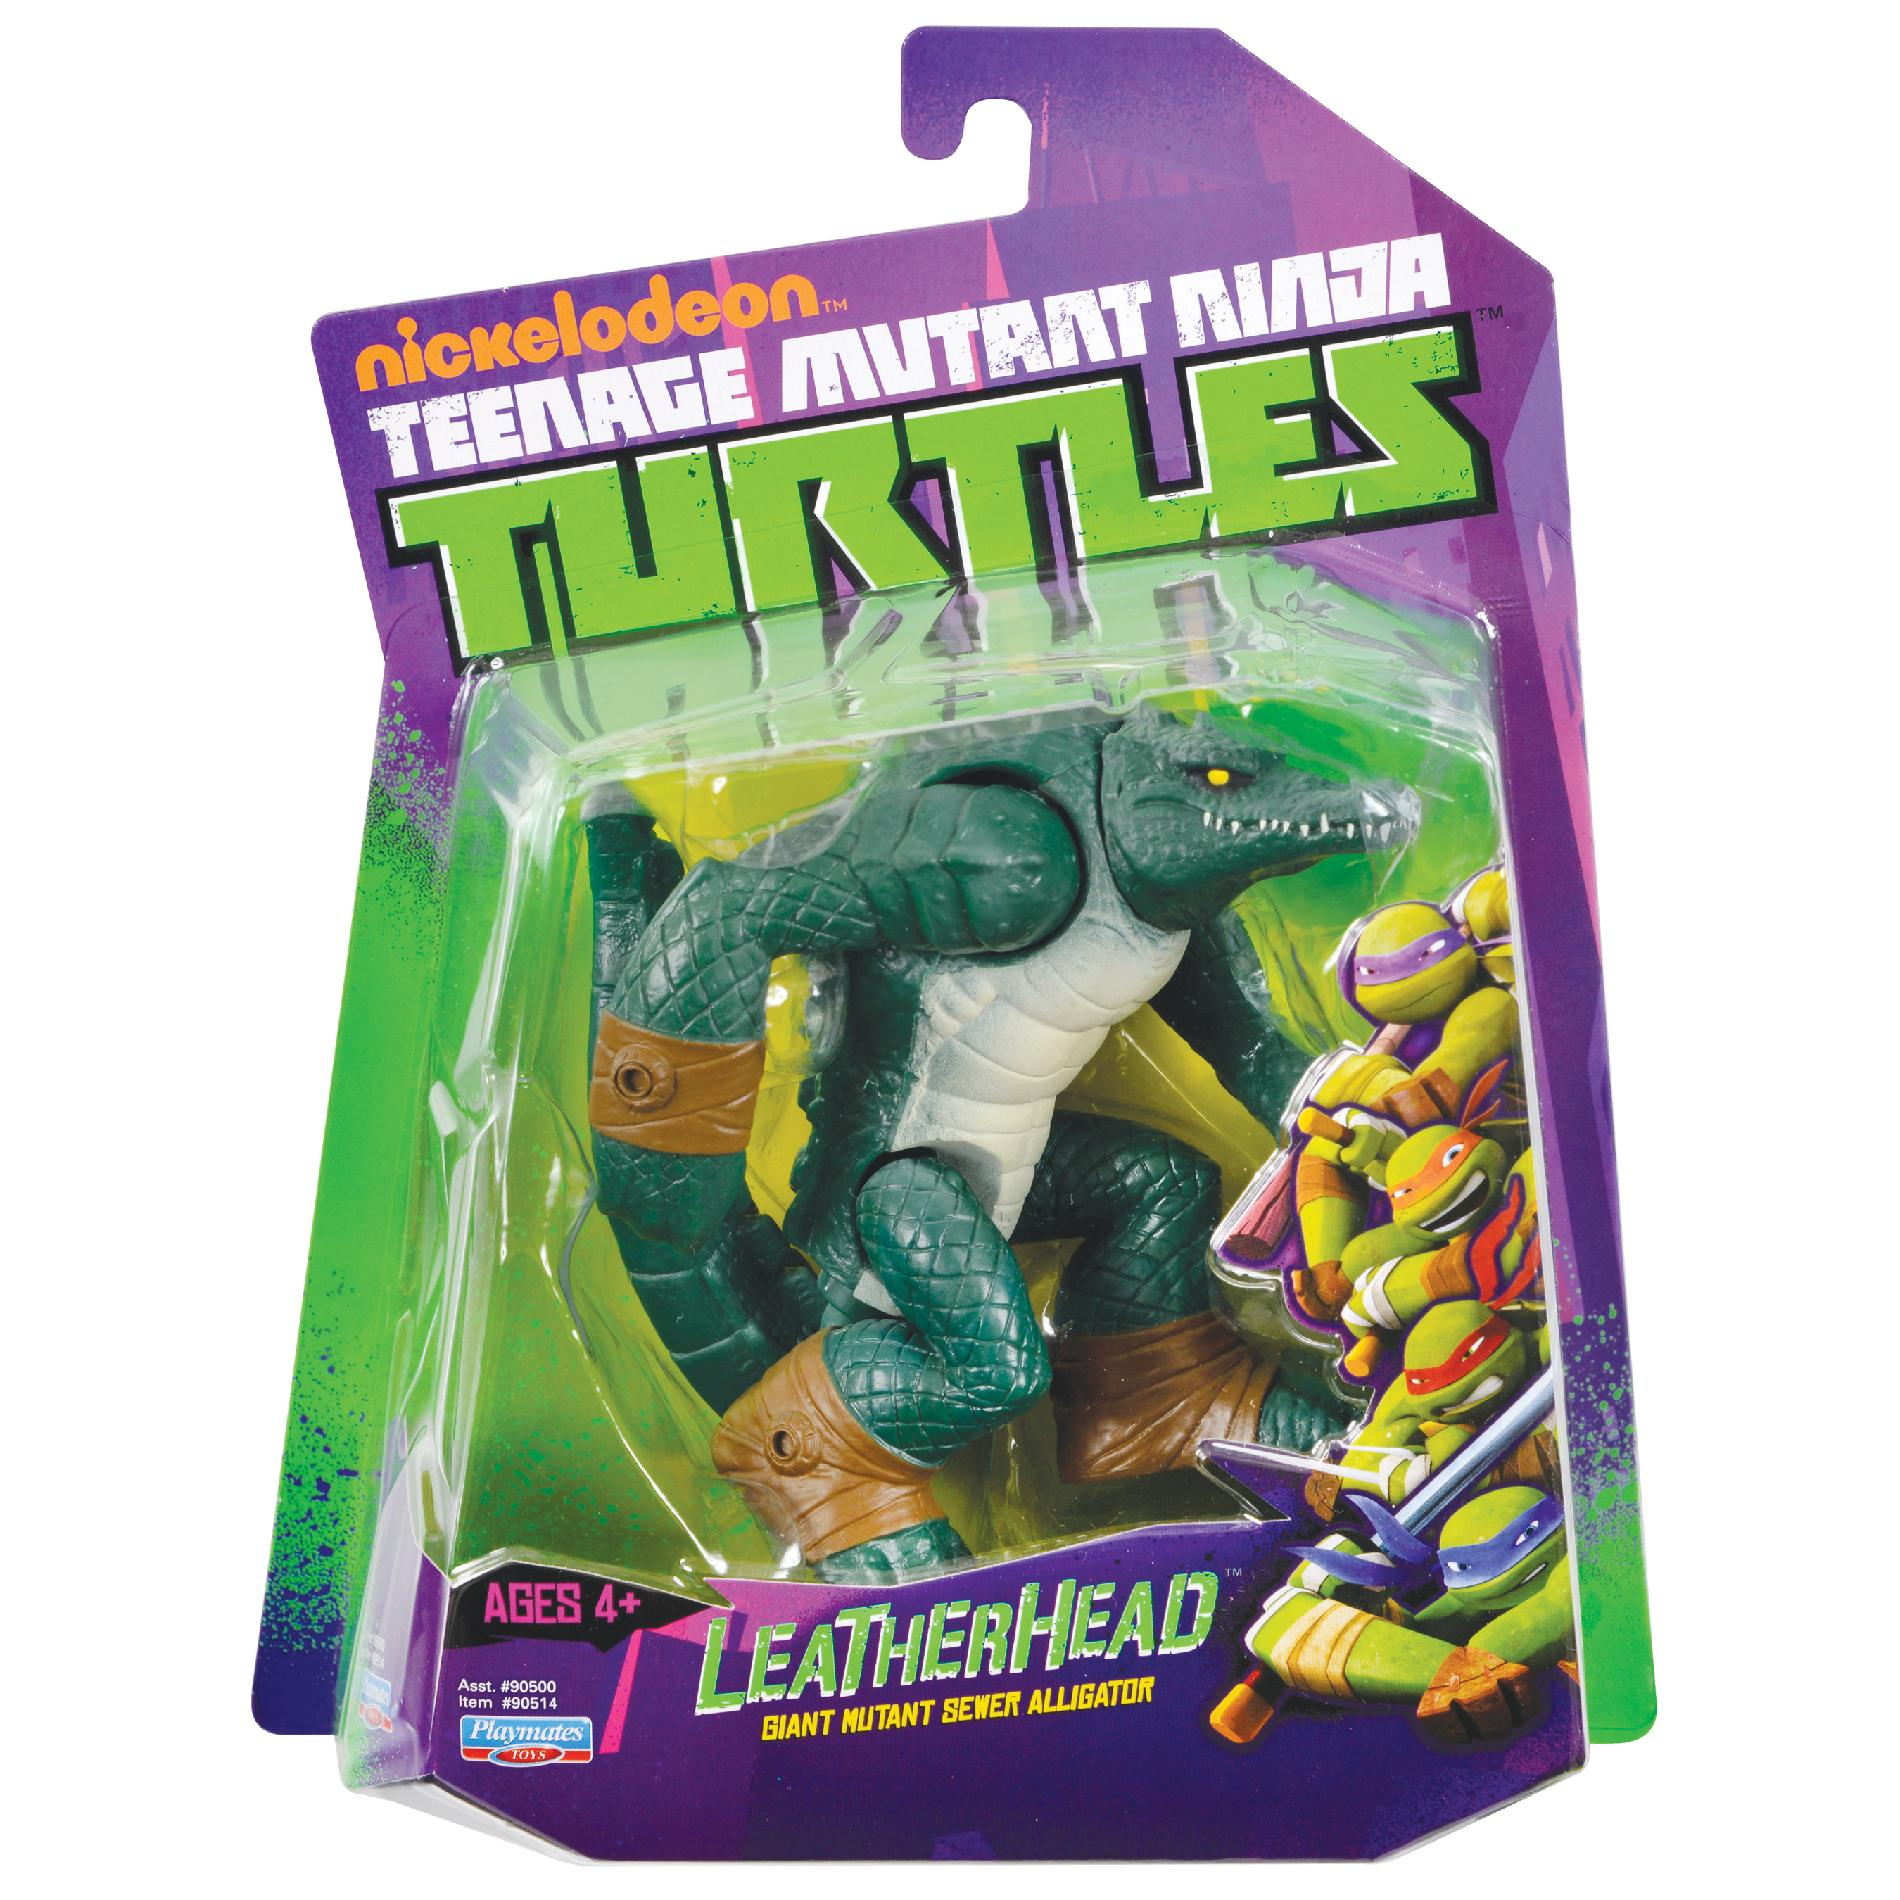 Teenage Mutant Ninja Turtles 2012 Neuralizer Toy : Leatherhead action figure tmntpedia fandom